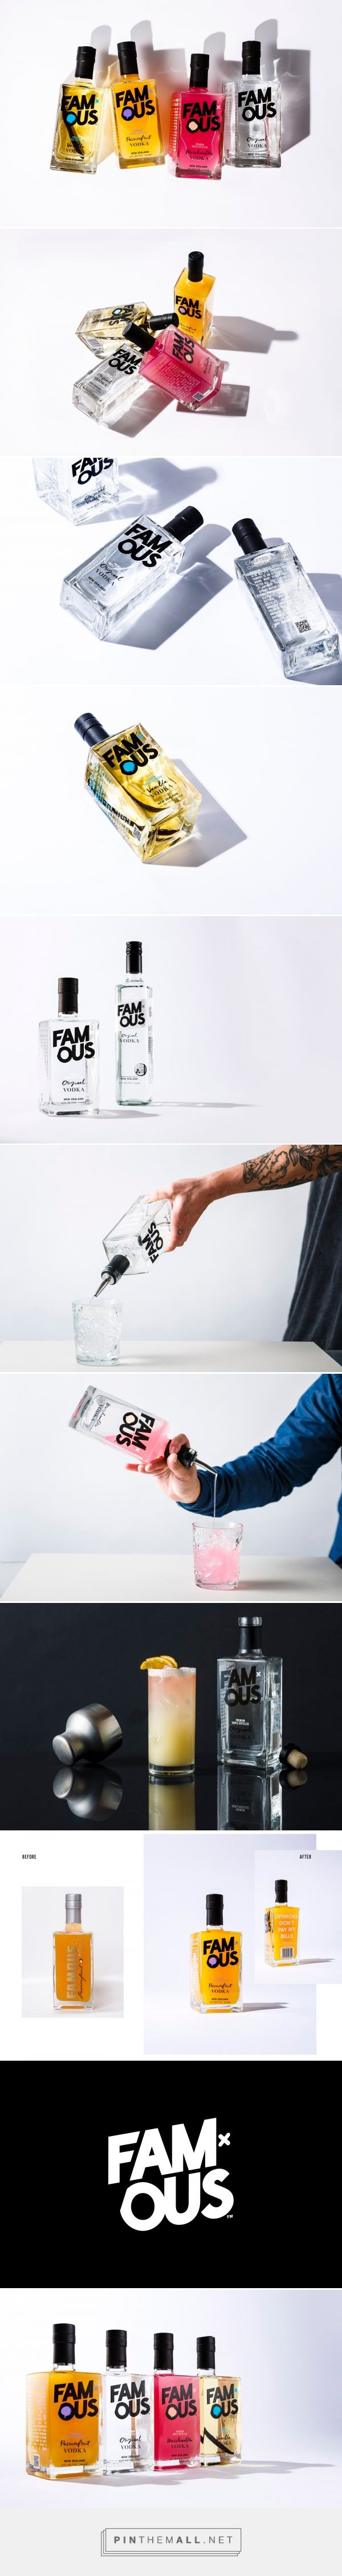 Famous Vodka - Packaging of the World - Creative Package Design Gallery - http://www.packagingoftheworld.com/2017/11/famous-vodka.html